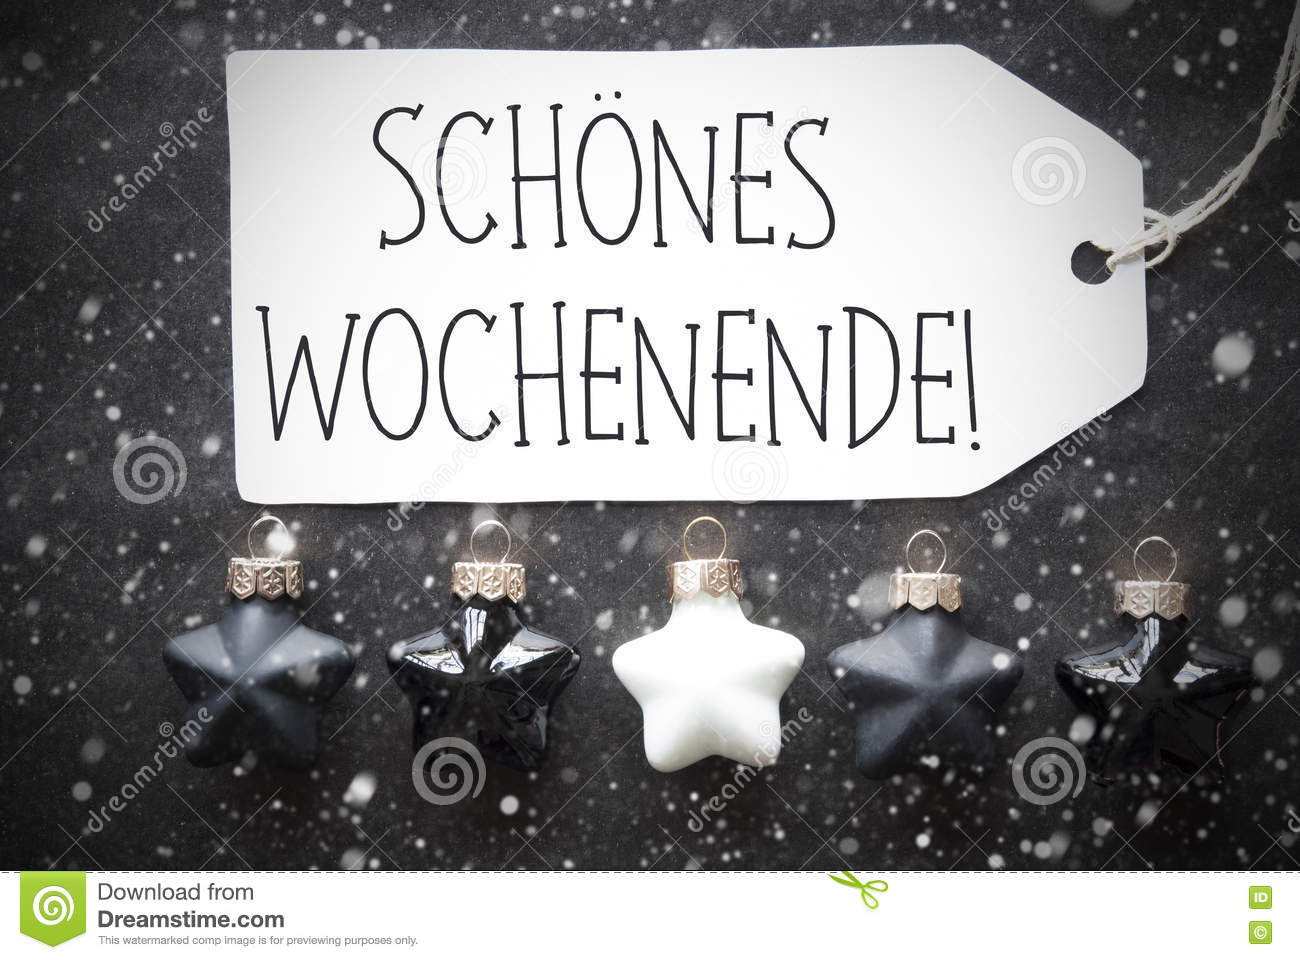 Black Friday Wochenende Black Christmas Balls Snowflakes Schoenes Wochenende Means Happy